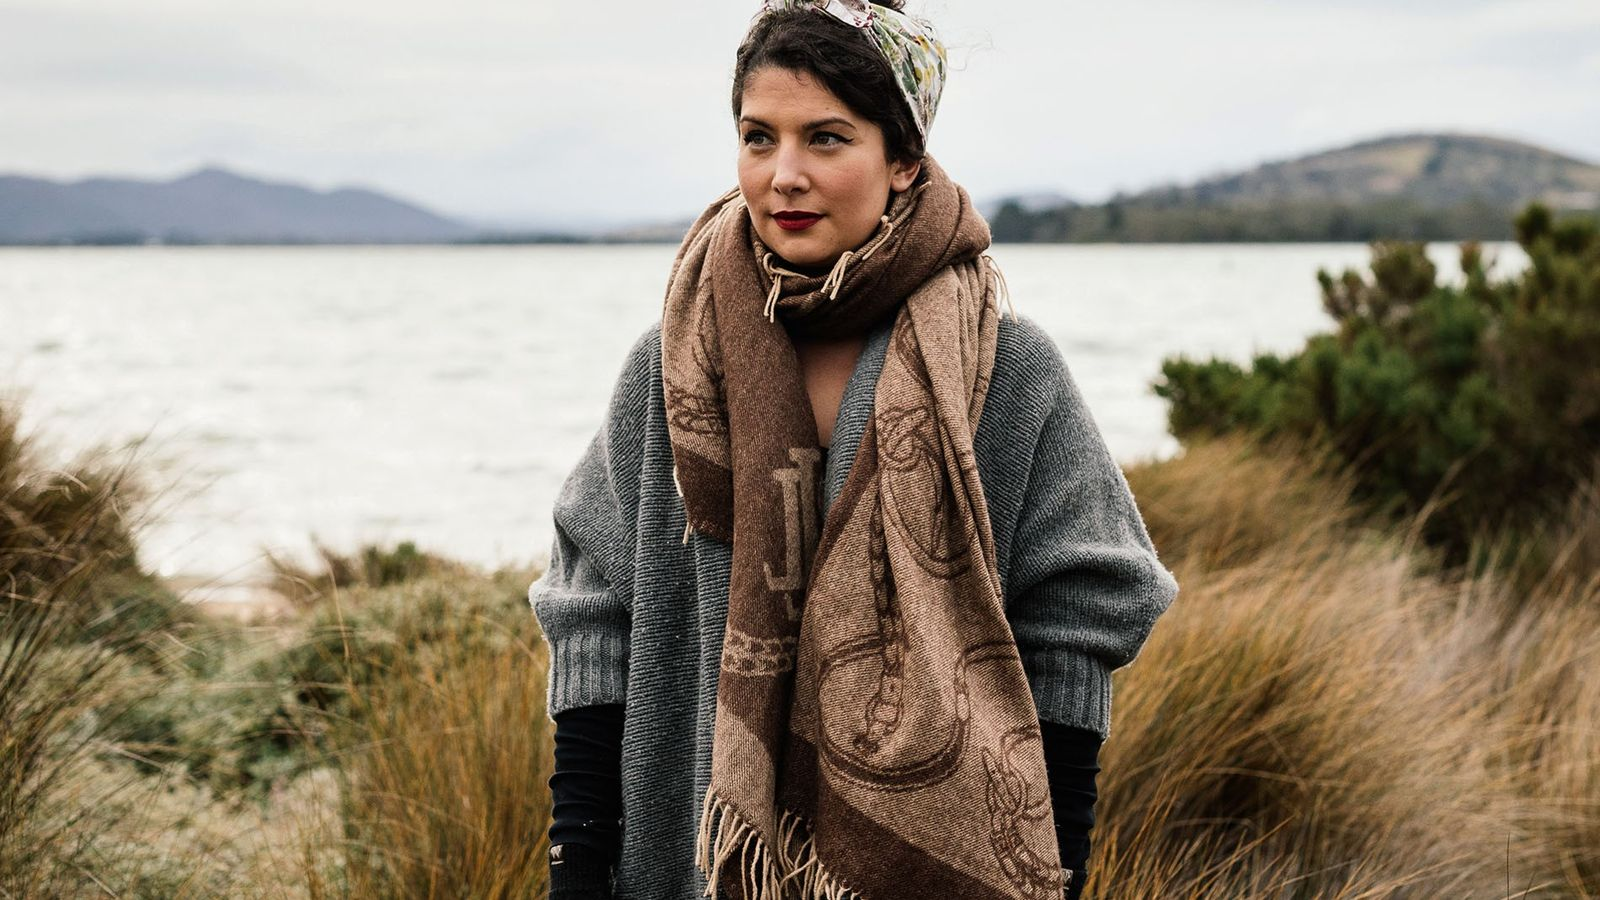 Analiese currently leads the kitchen at Franklin in Hobart, Tasmania, where she makes food inspired by ...